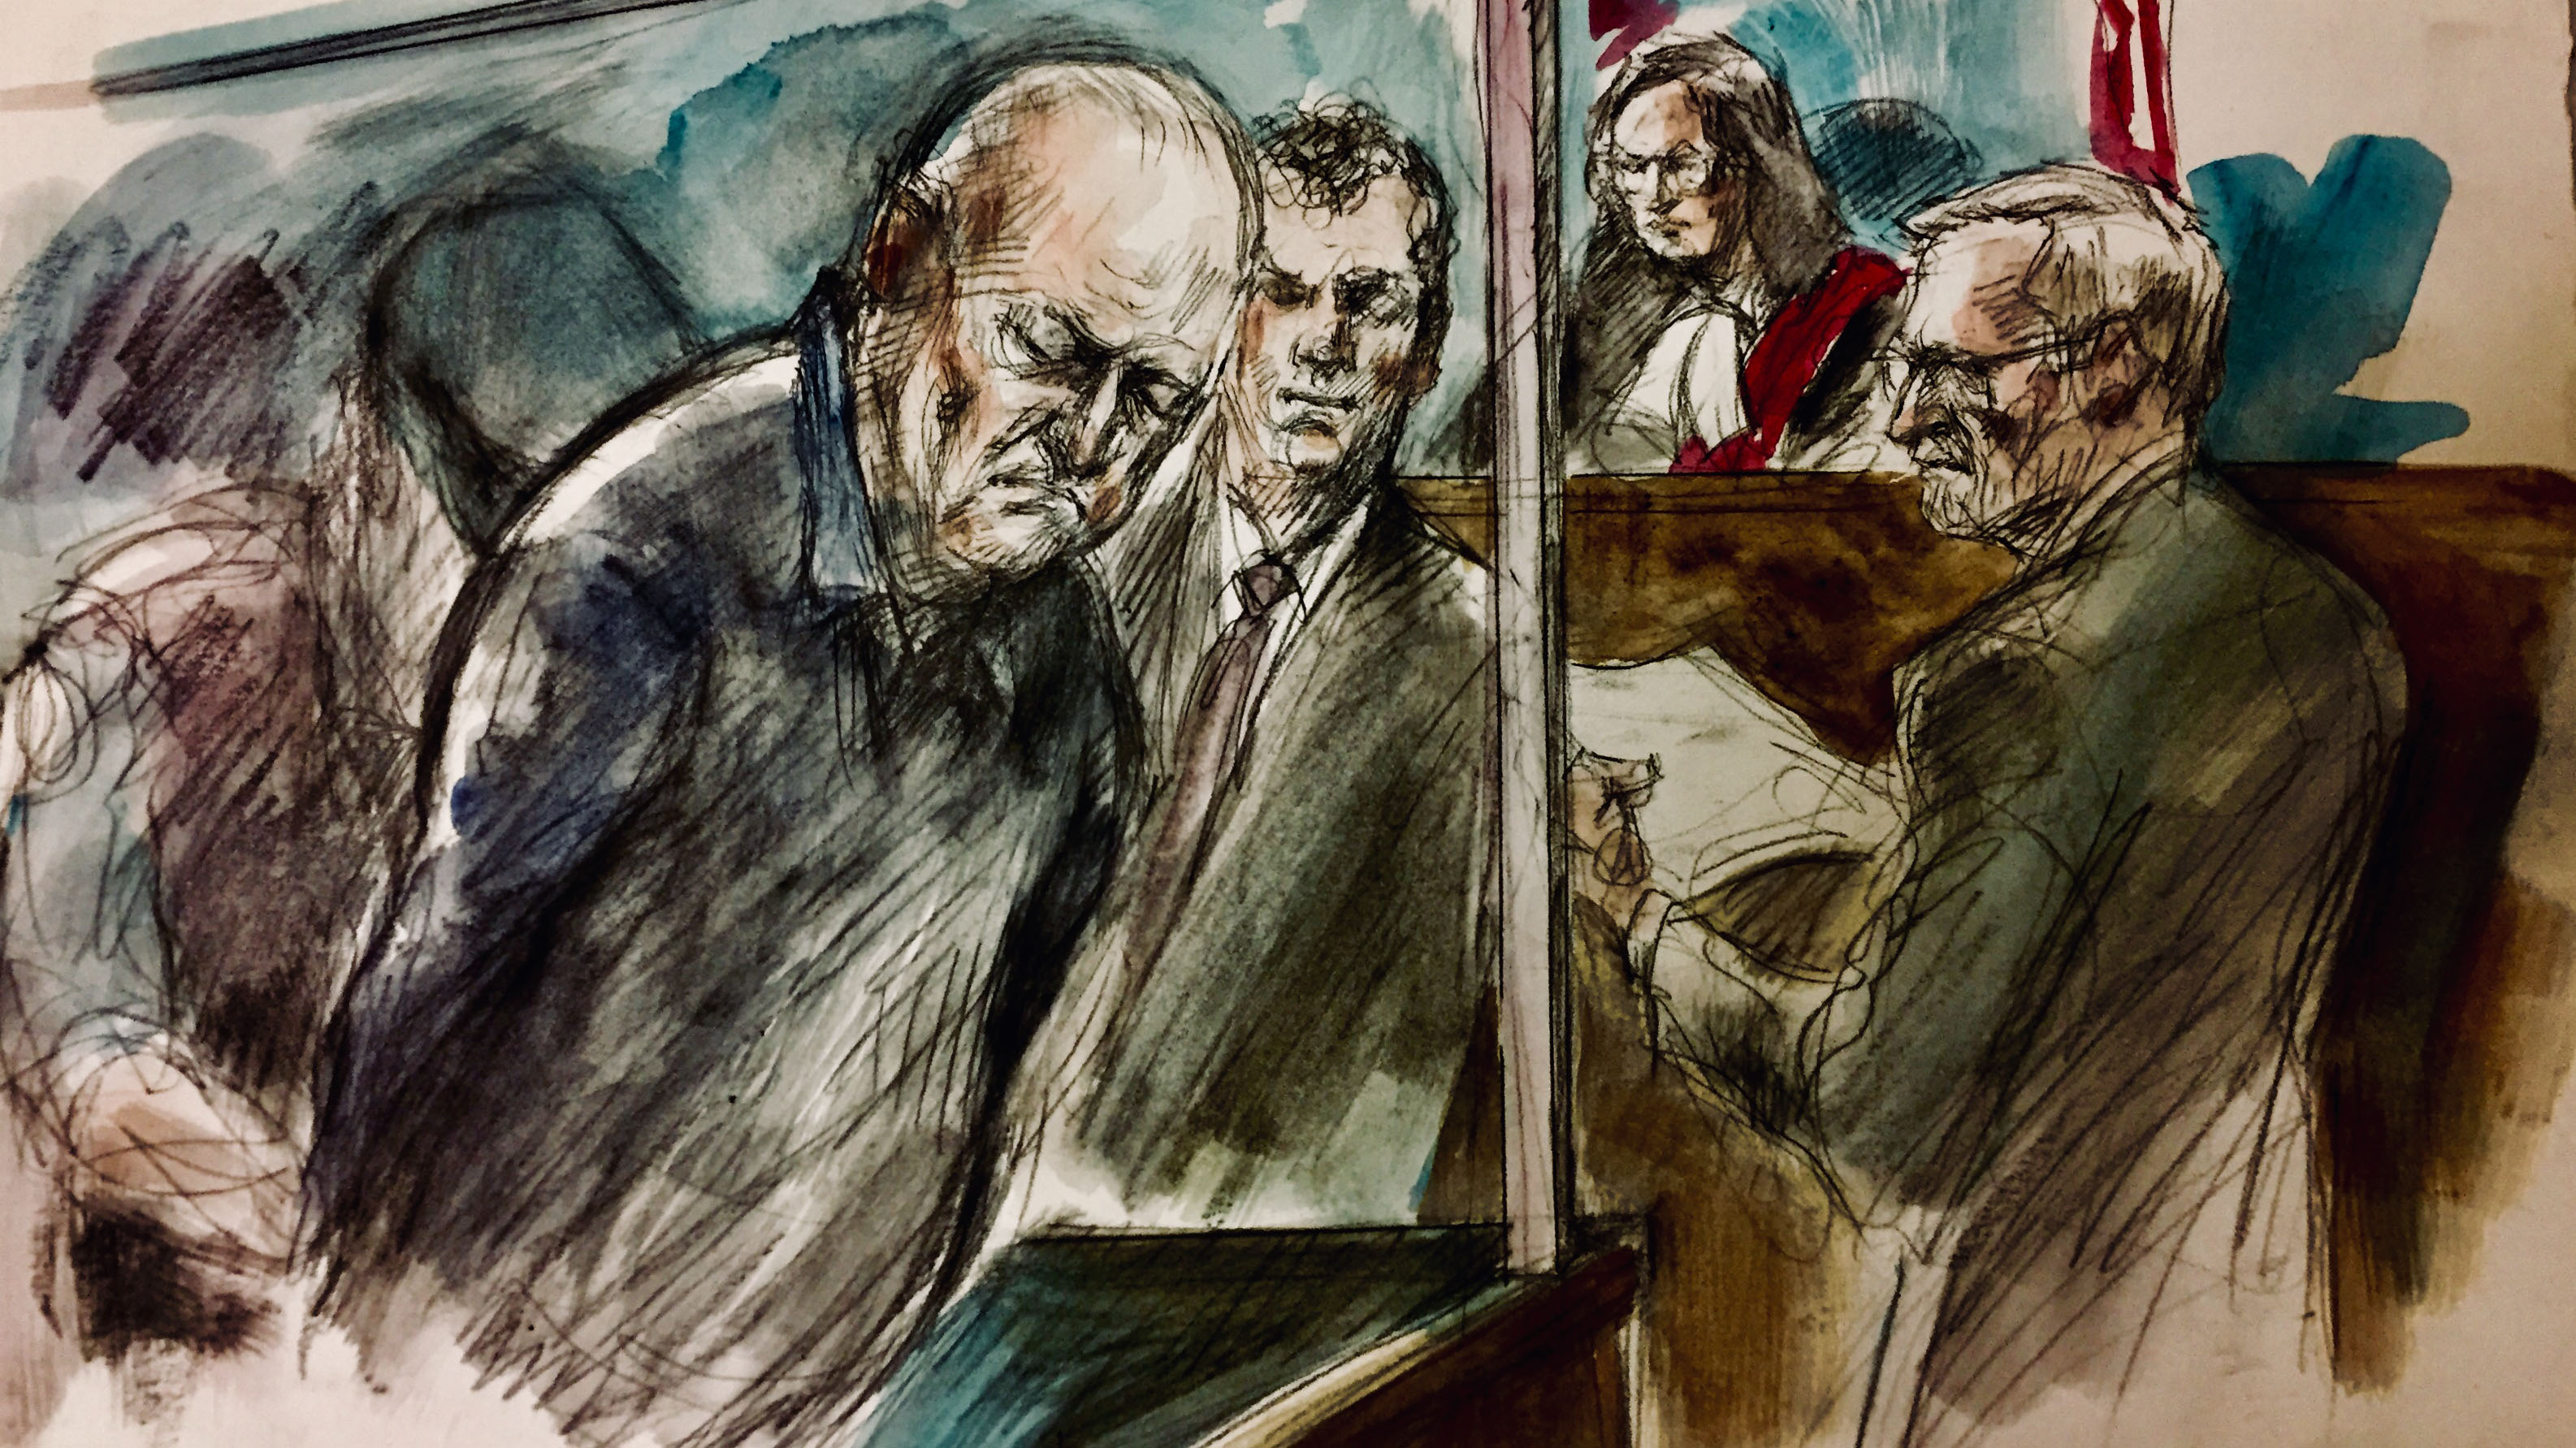 Bruce McArthur brought into court for his arraignment at College Park, College Park, Oct. 22, 2018. Sketch: Pam Davies